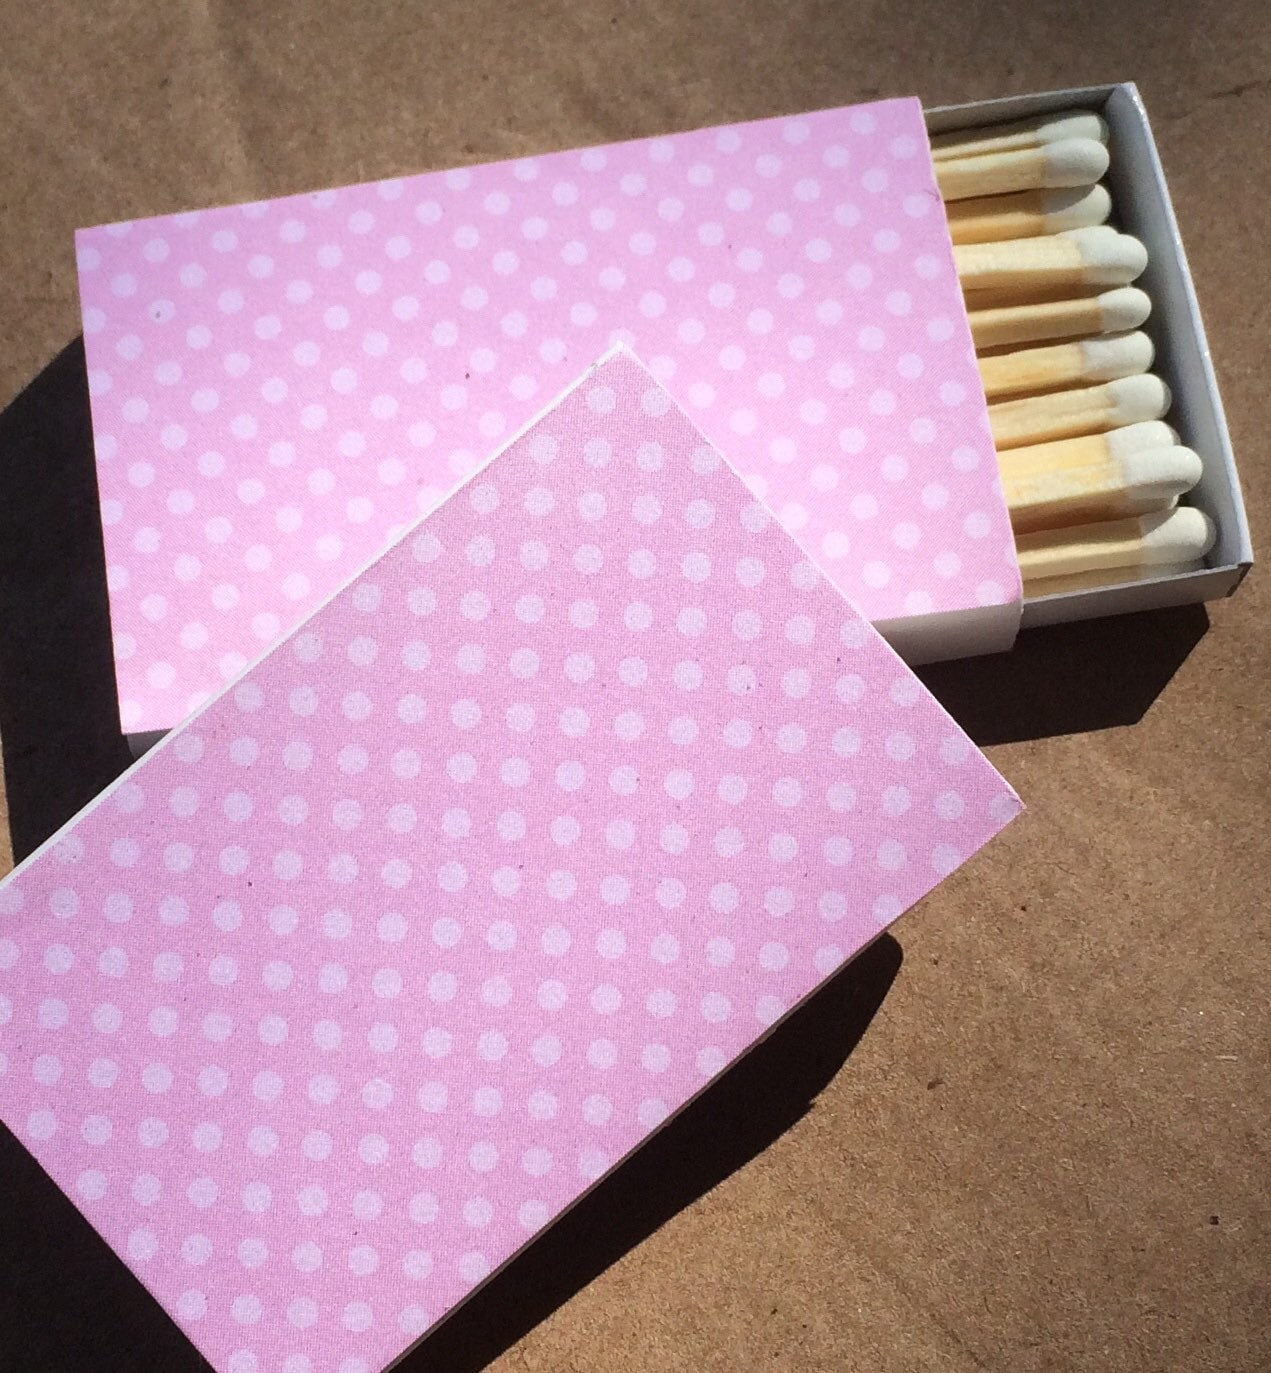 8 Matchbox Wedding Favors pink polka dot